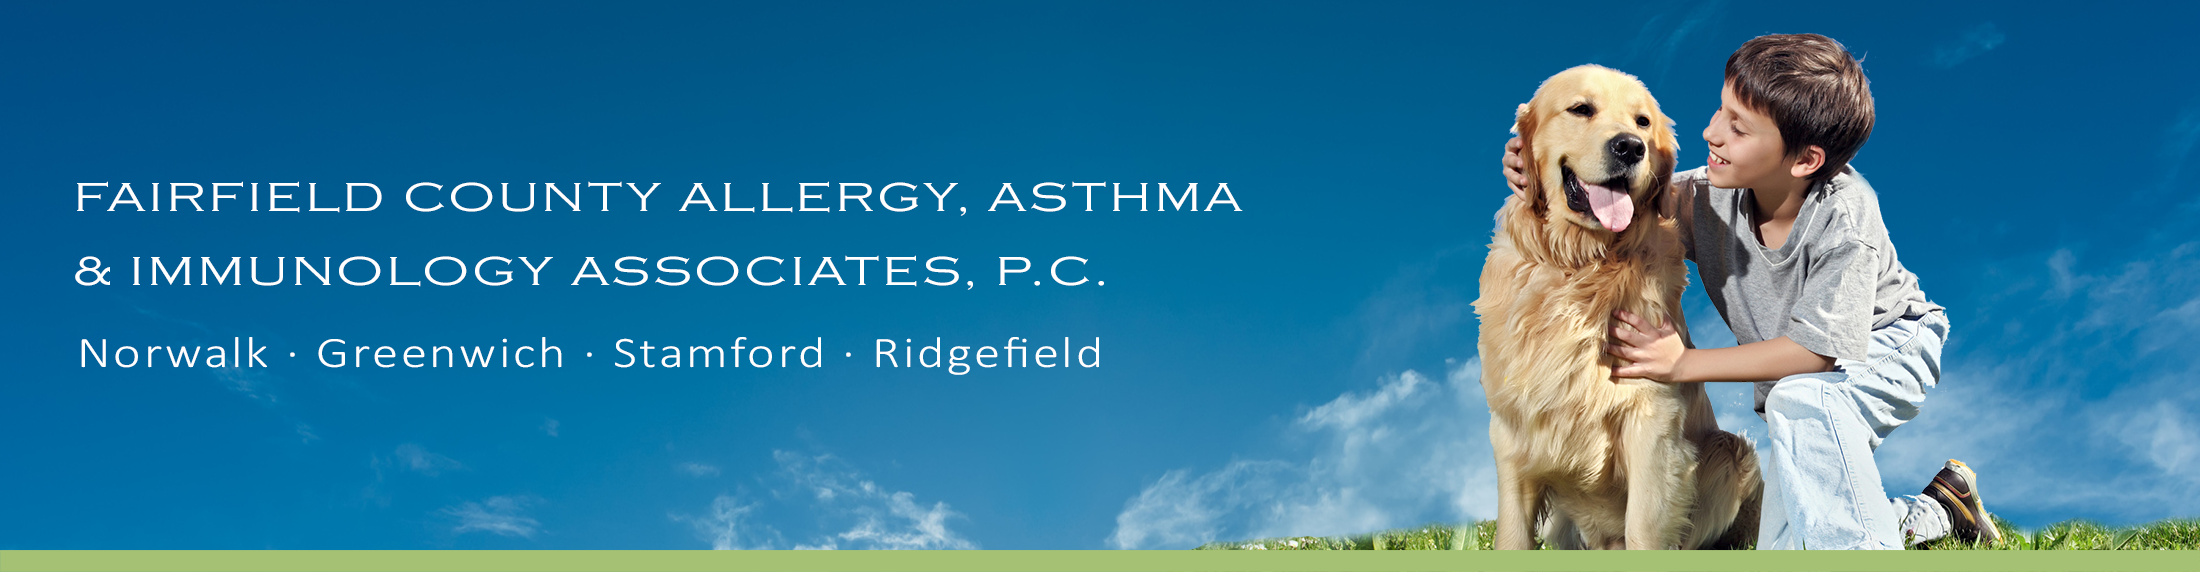 FCAAIA - Fairfield County Allergy, Asthma, and Immunology Associates PC